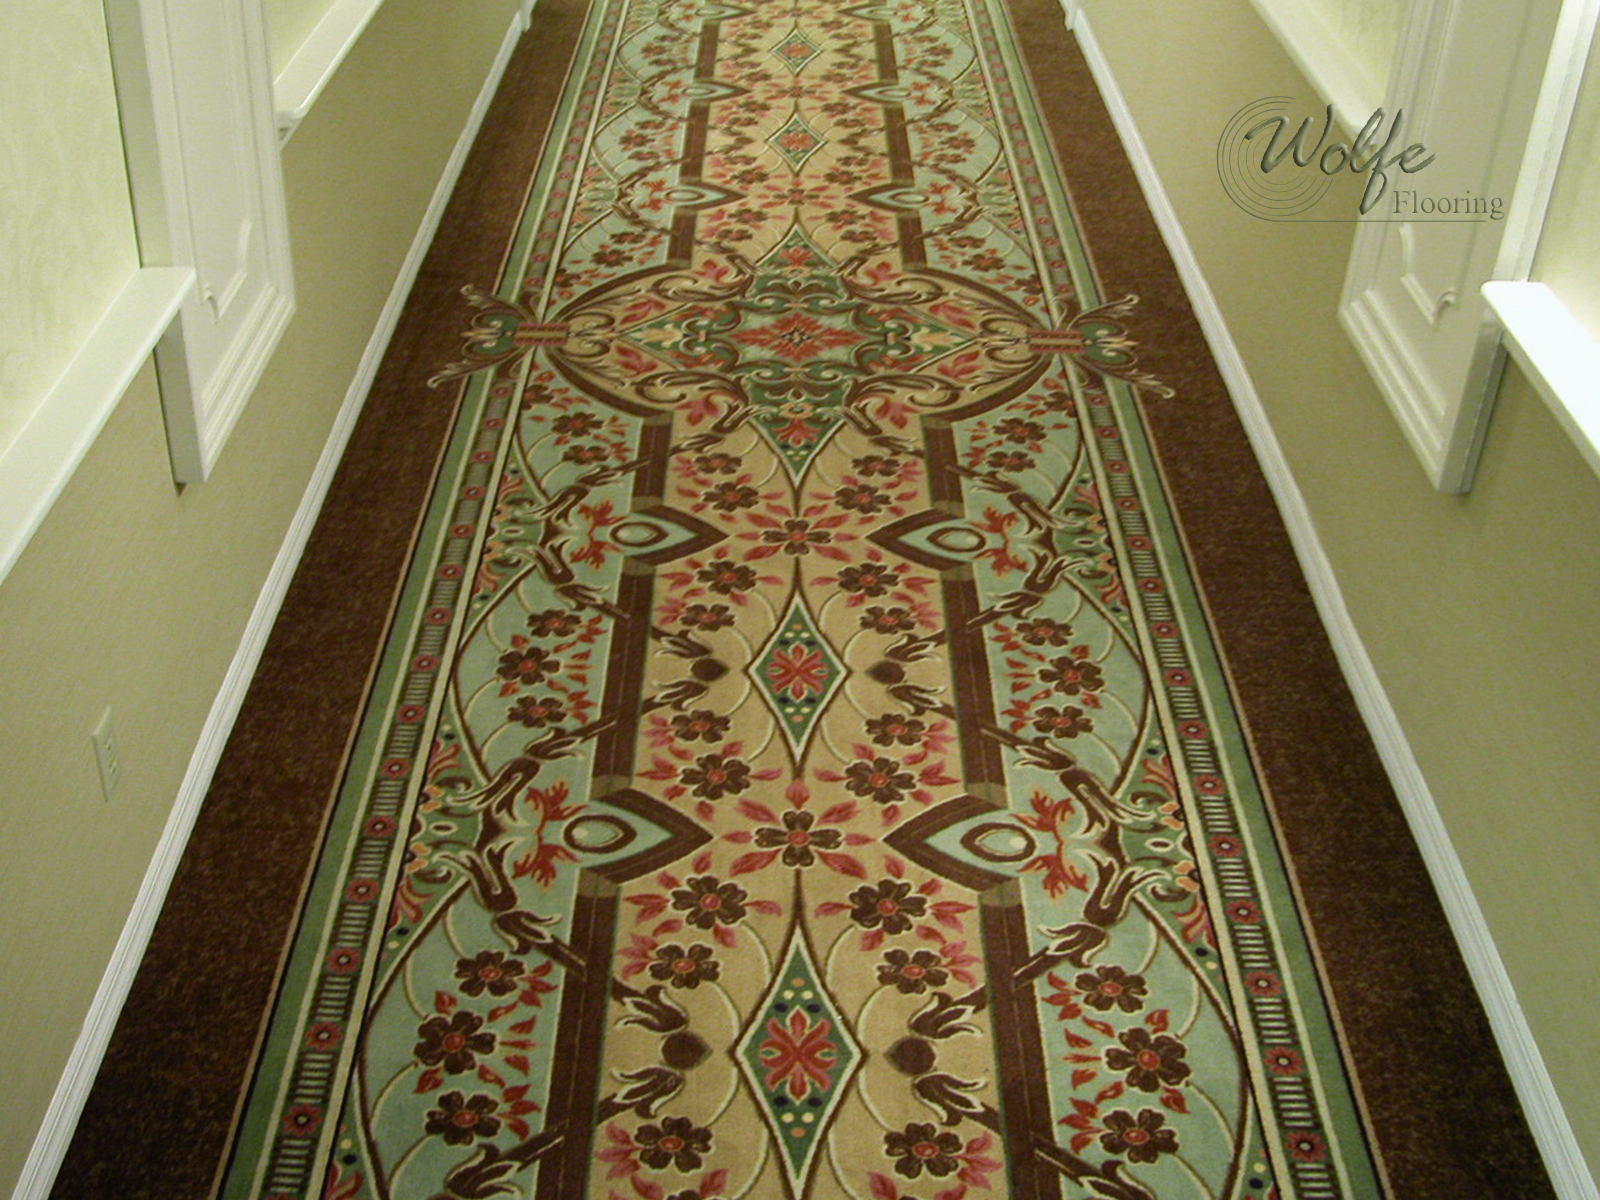 Carpet Yards To Square Feet Images Picture Idea 4 You